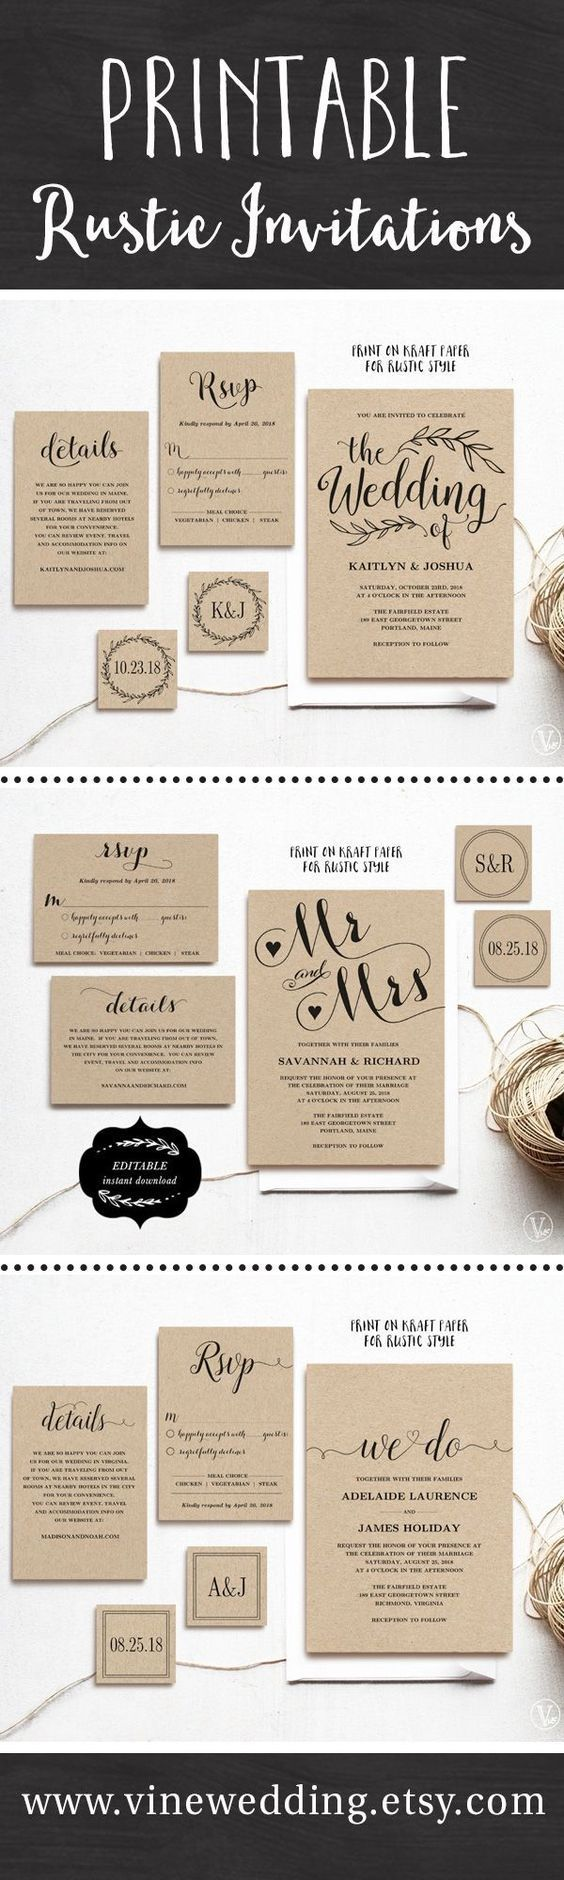 muslim wedding card invitation quotes%0A diy wedding invitations best photos  wedding diy  cuteweddingideas com  Great DIY invitation printables